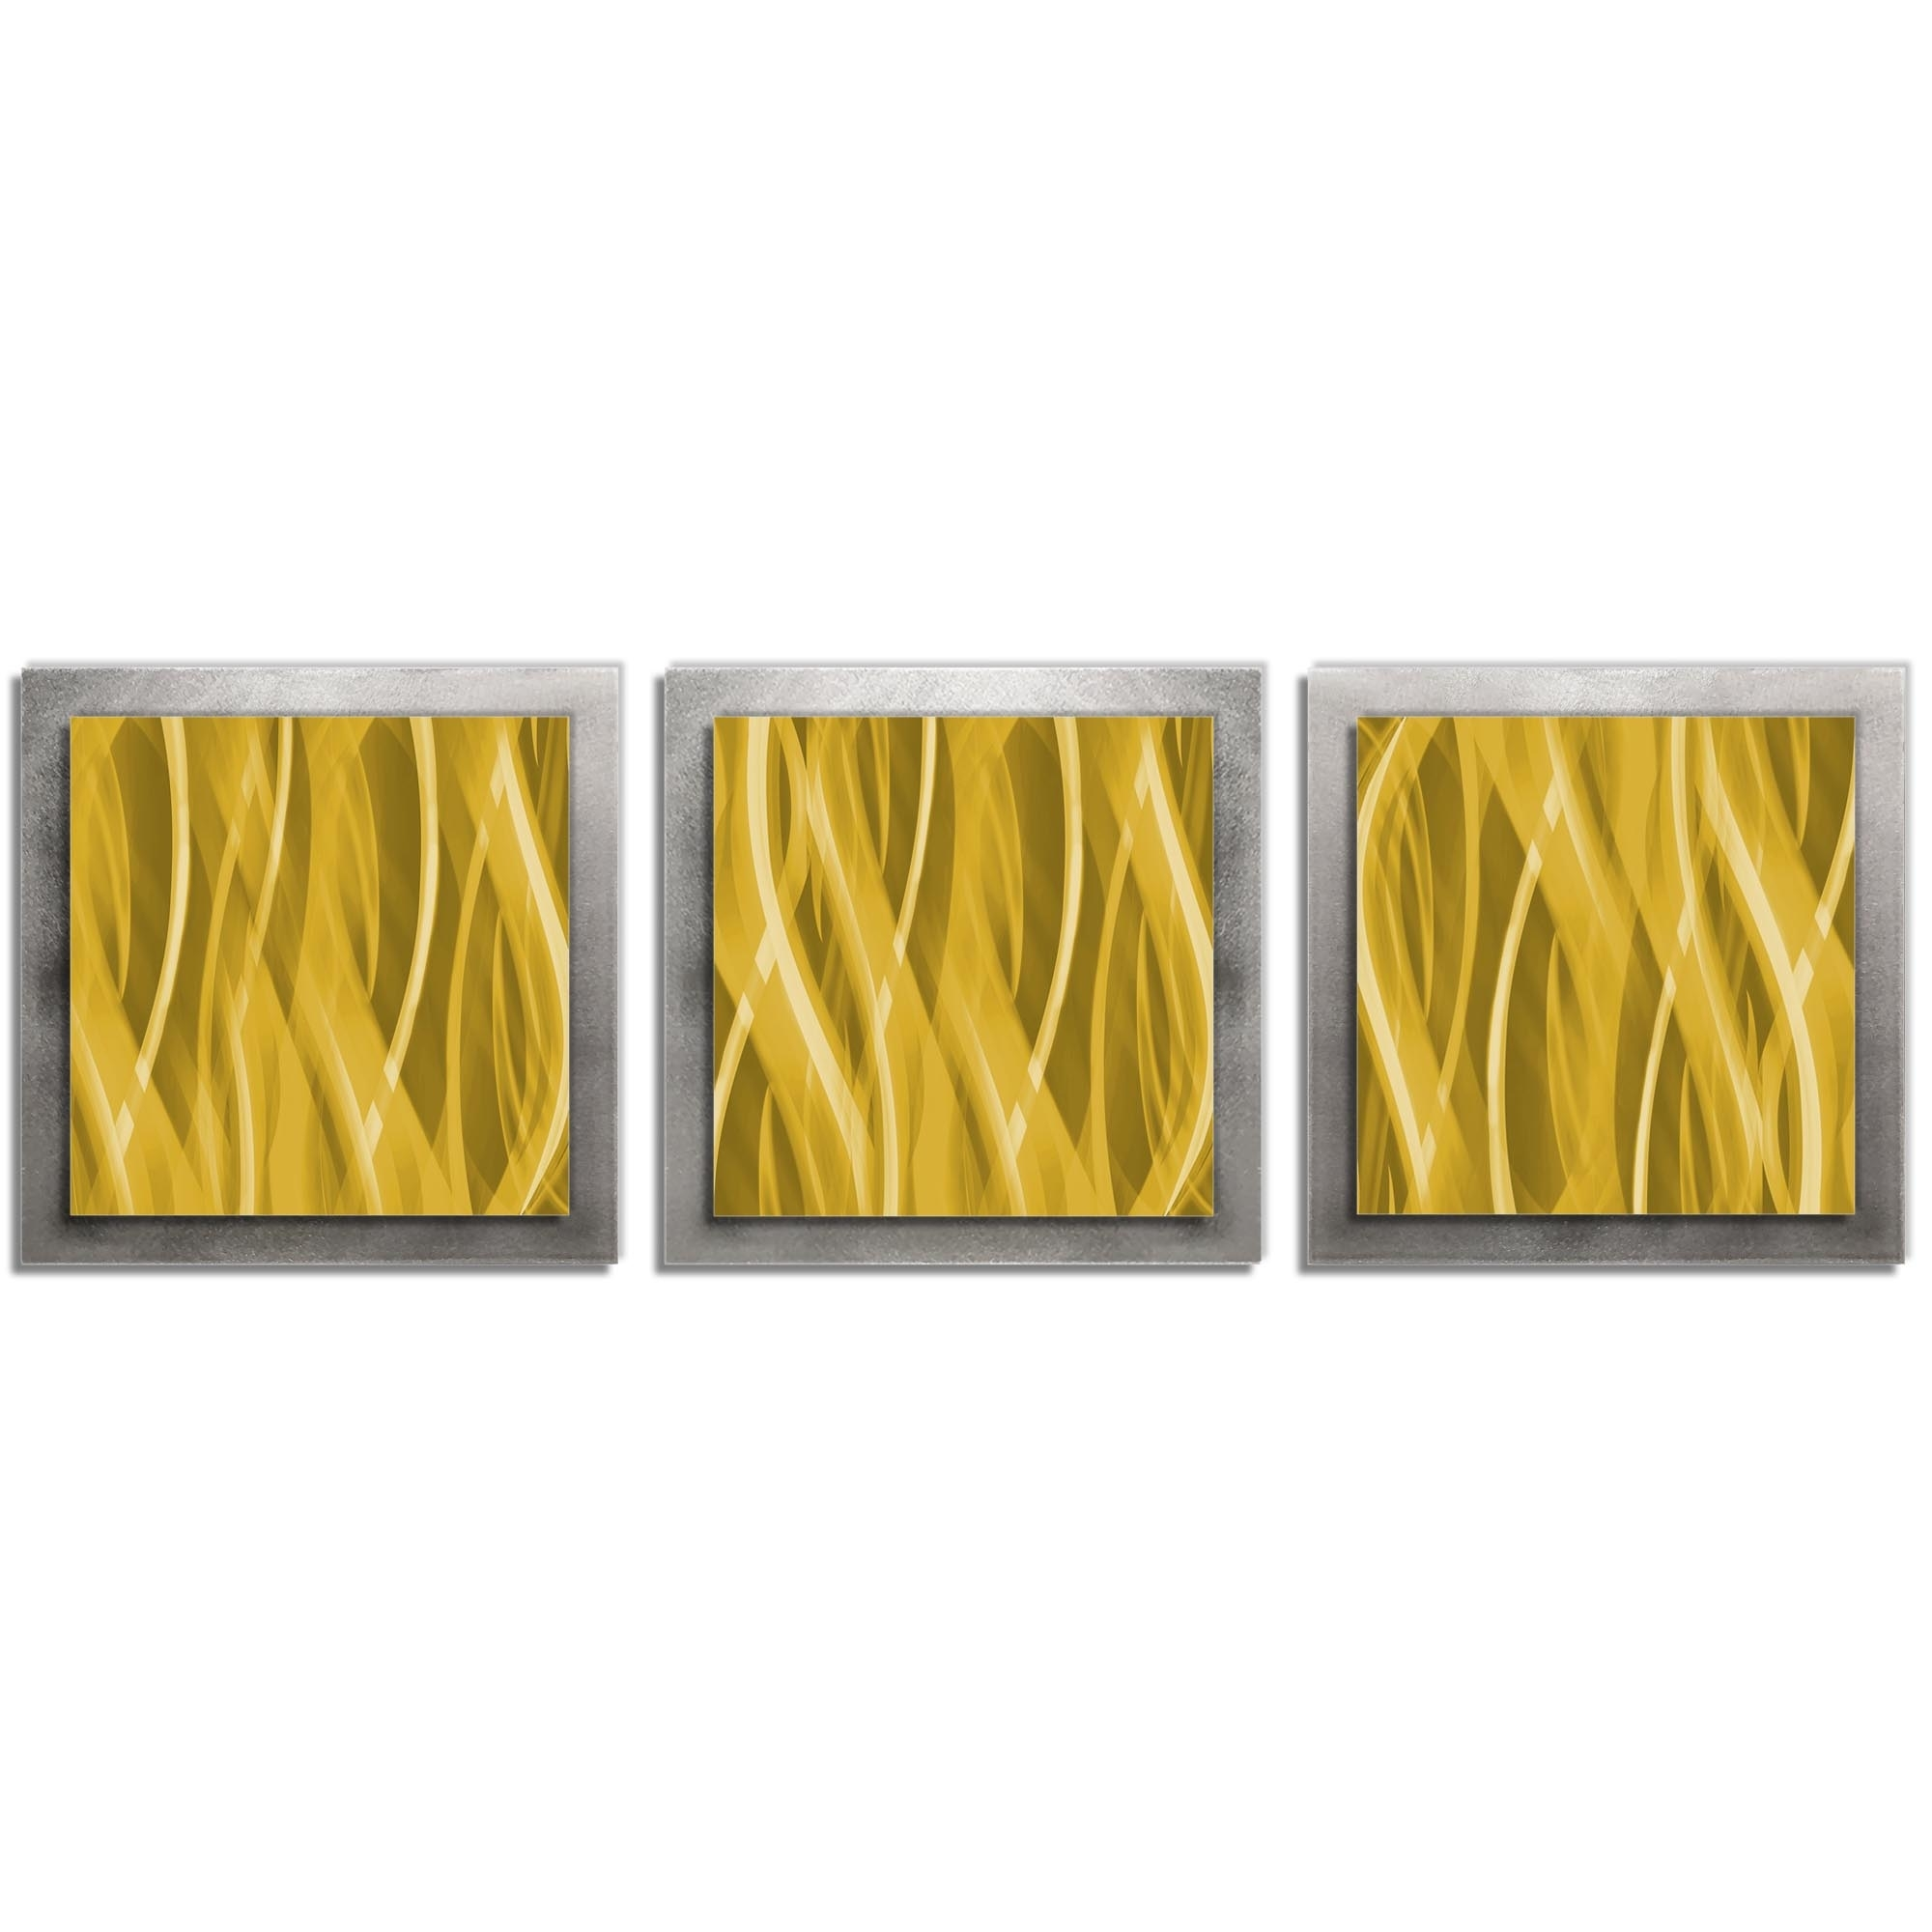 Golden Wall Art 'Gold Essence' - 38x12 in. -Metal Artwork, Contemporary Decor - Modern Metal Painting